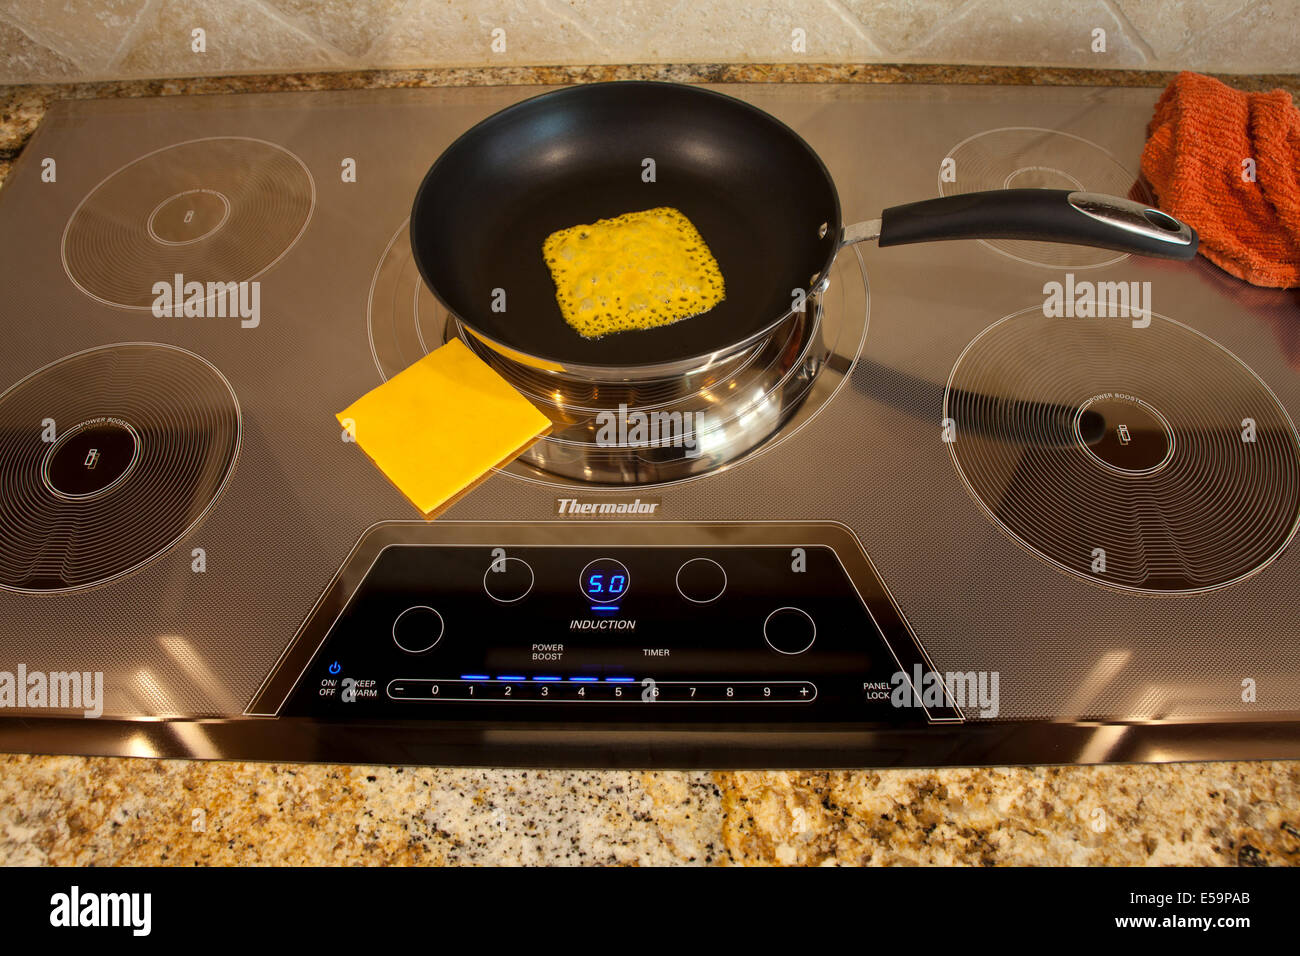 magnetic energy of Thermador Induction cooktop with melting cheese  Series of 4 images. MR  © Myrleen Pearson - Stock Image